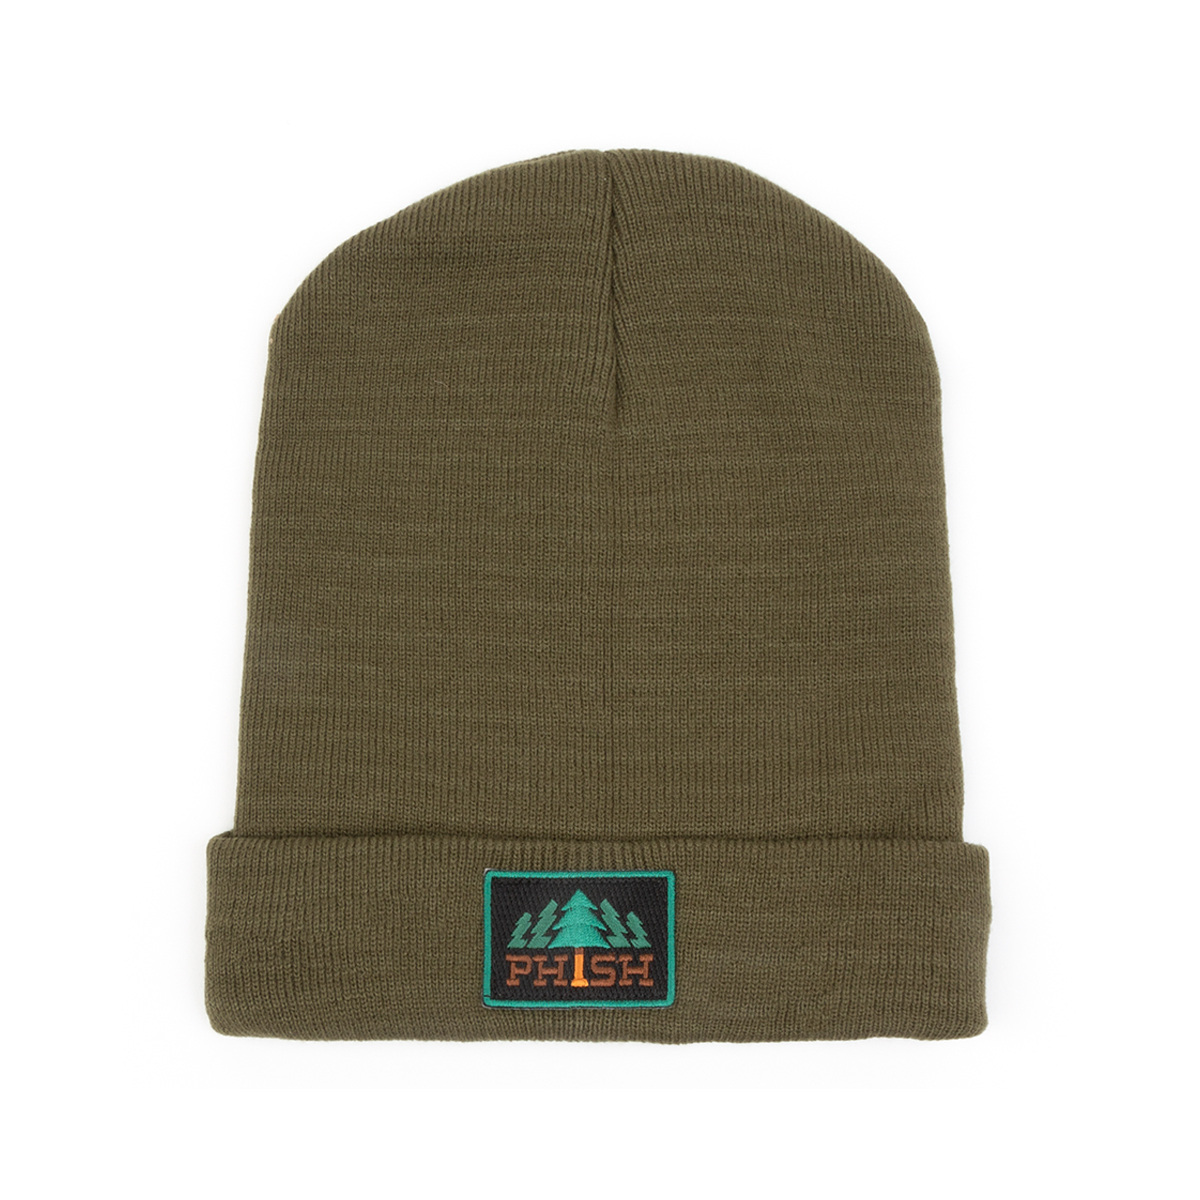 Timber Knit Beanie